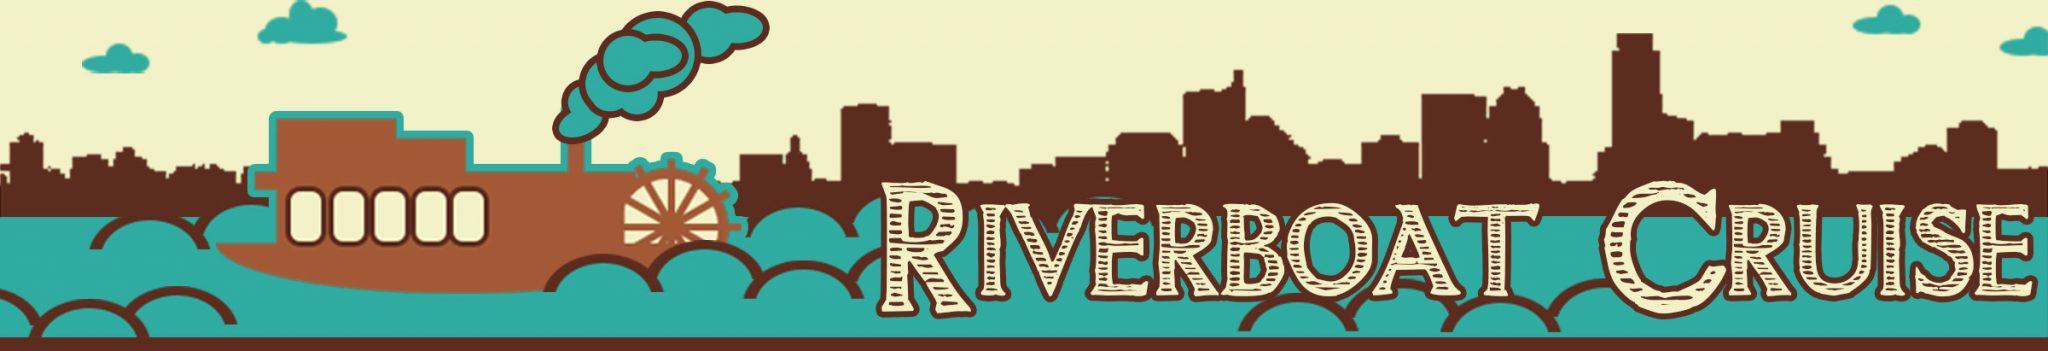 riverboat2016-email-header2